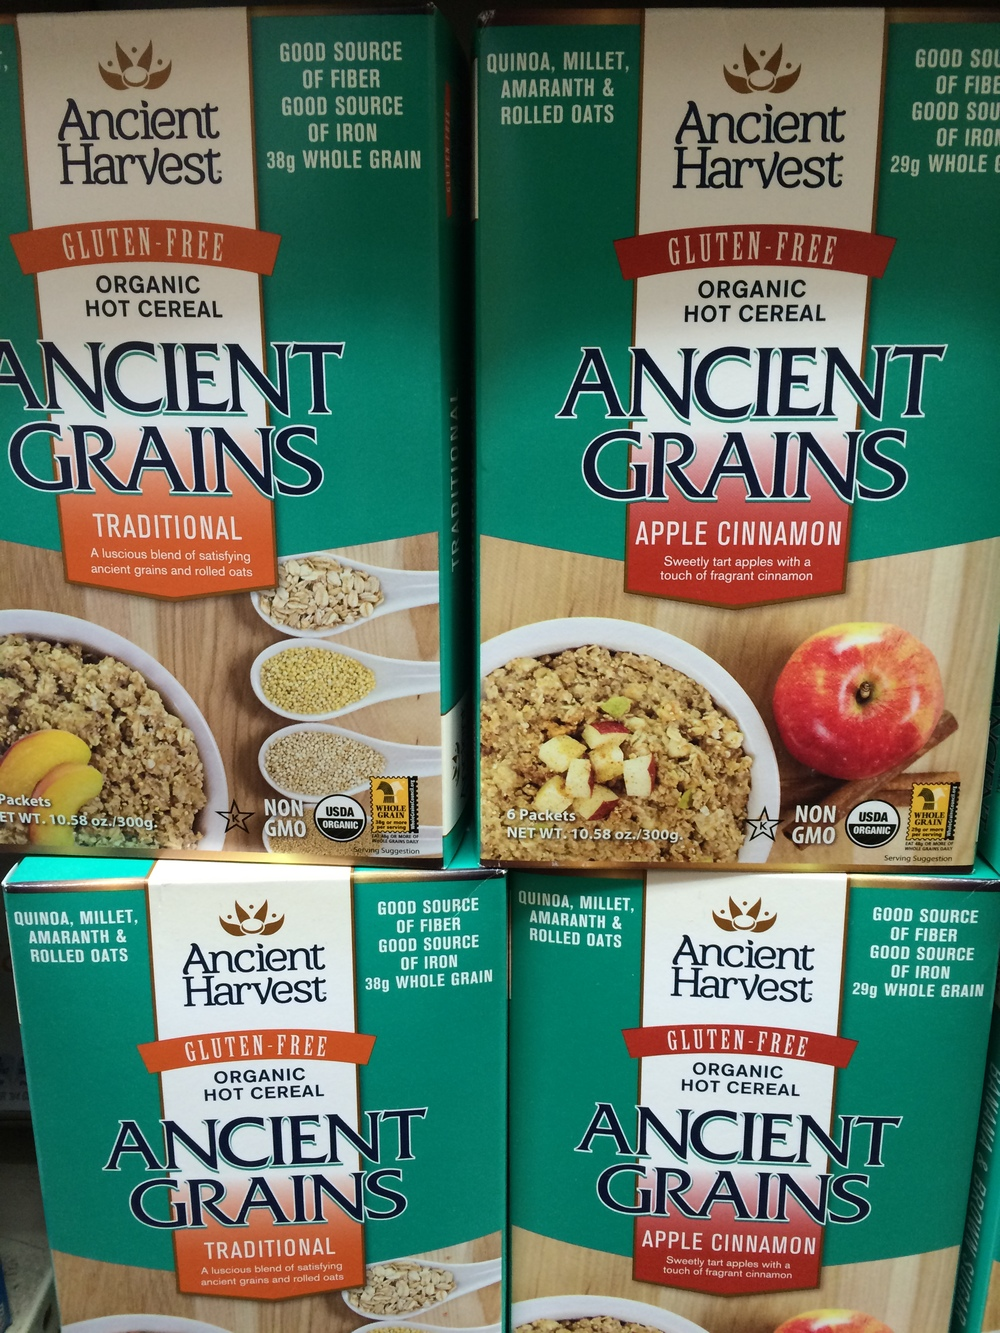 Ancient Harvest Gluten Free Cereal